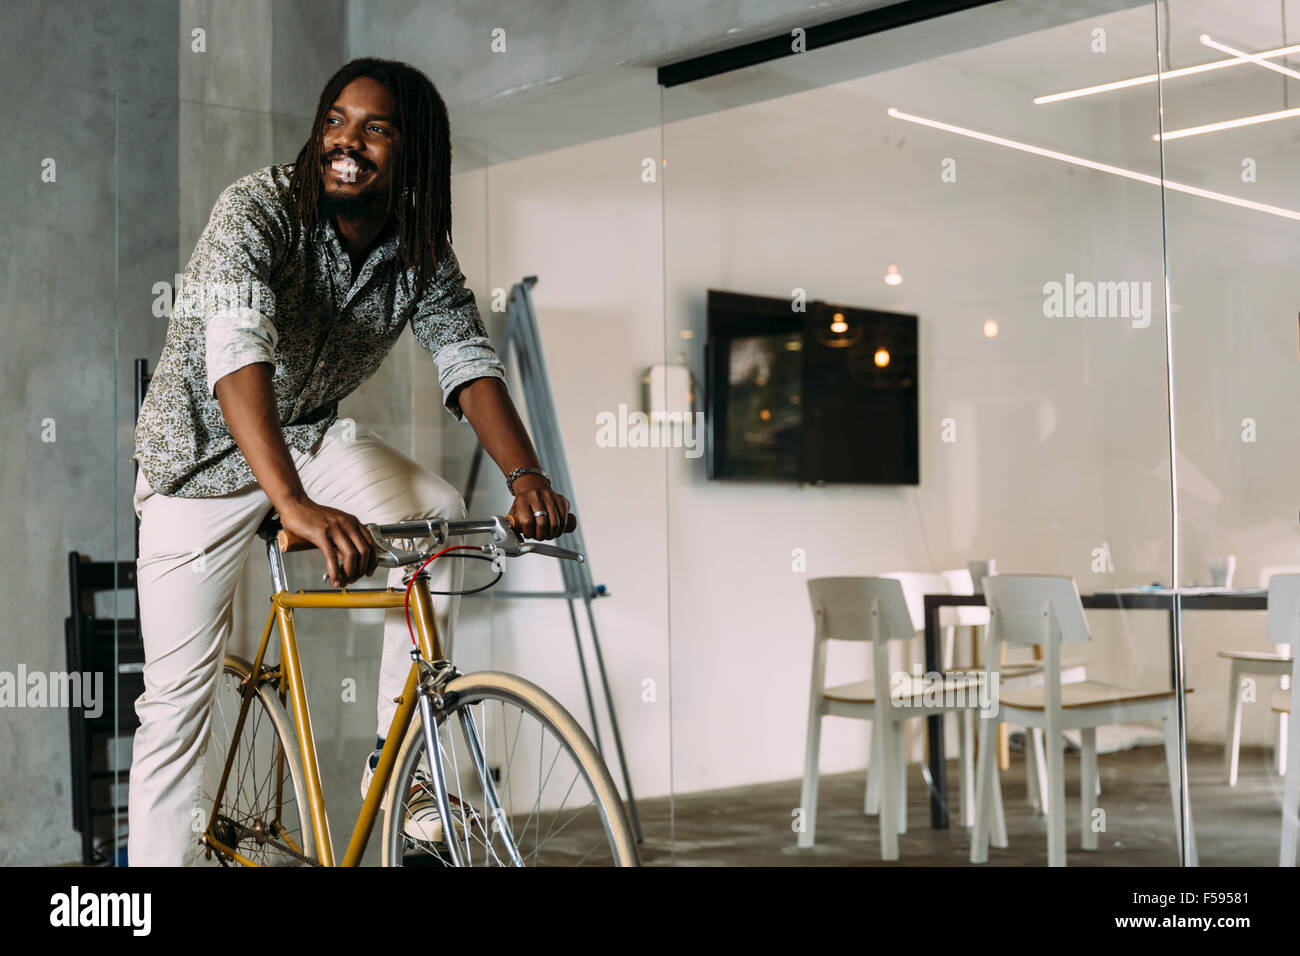 Businessman riding a bicycle to work - Stock Image